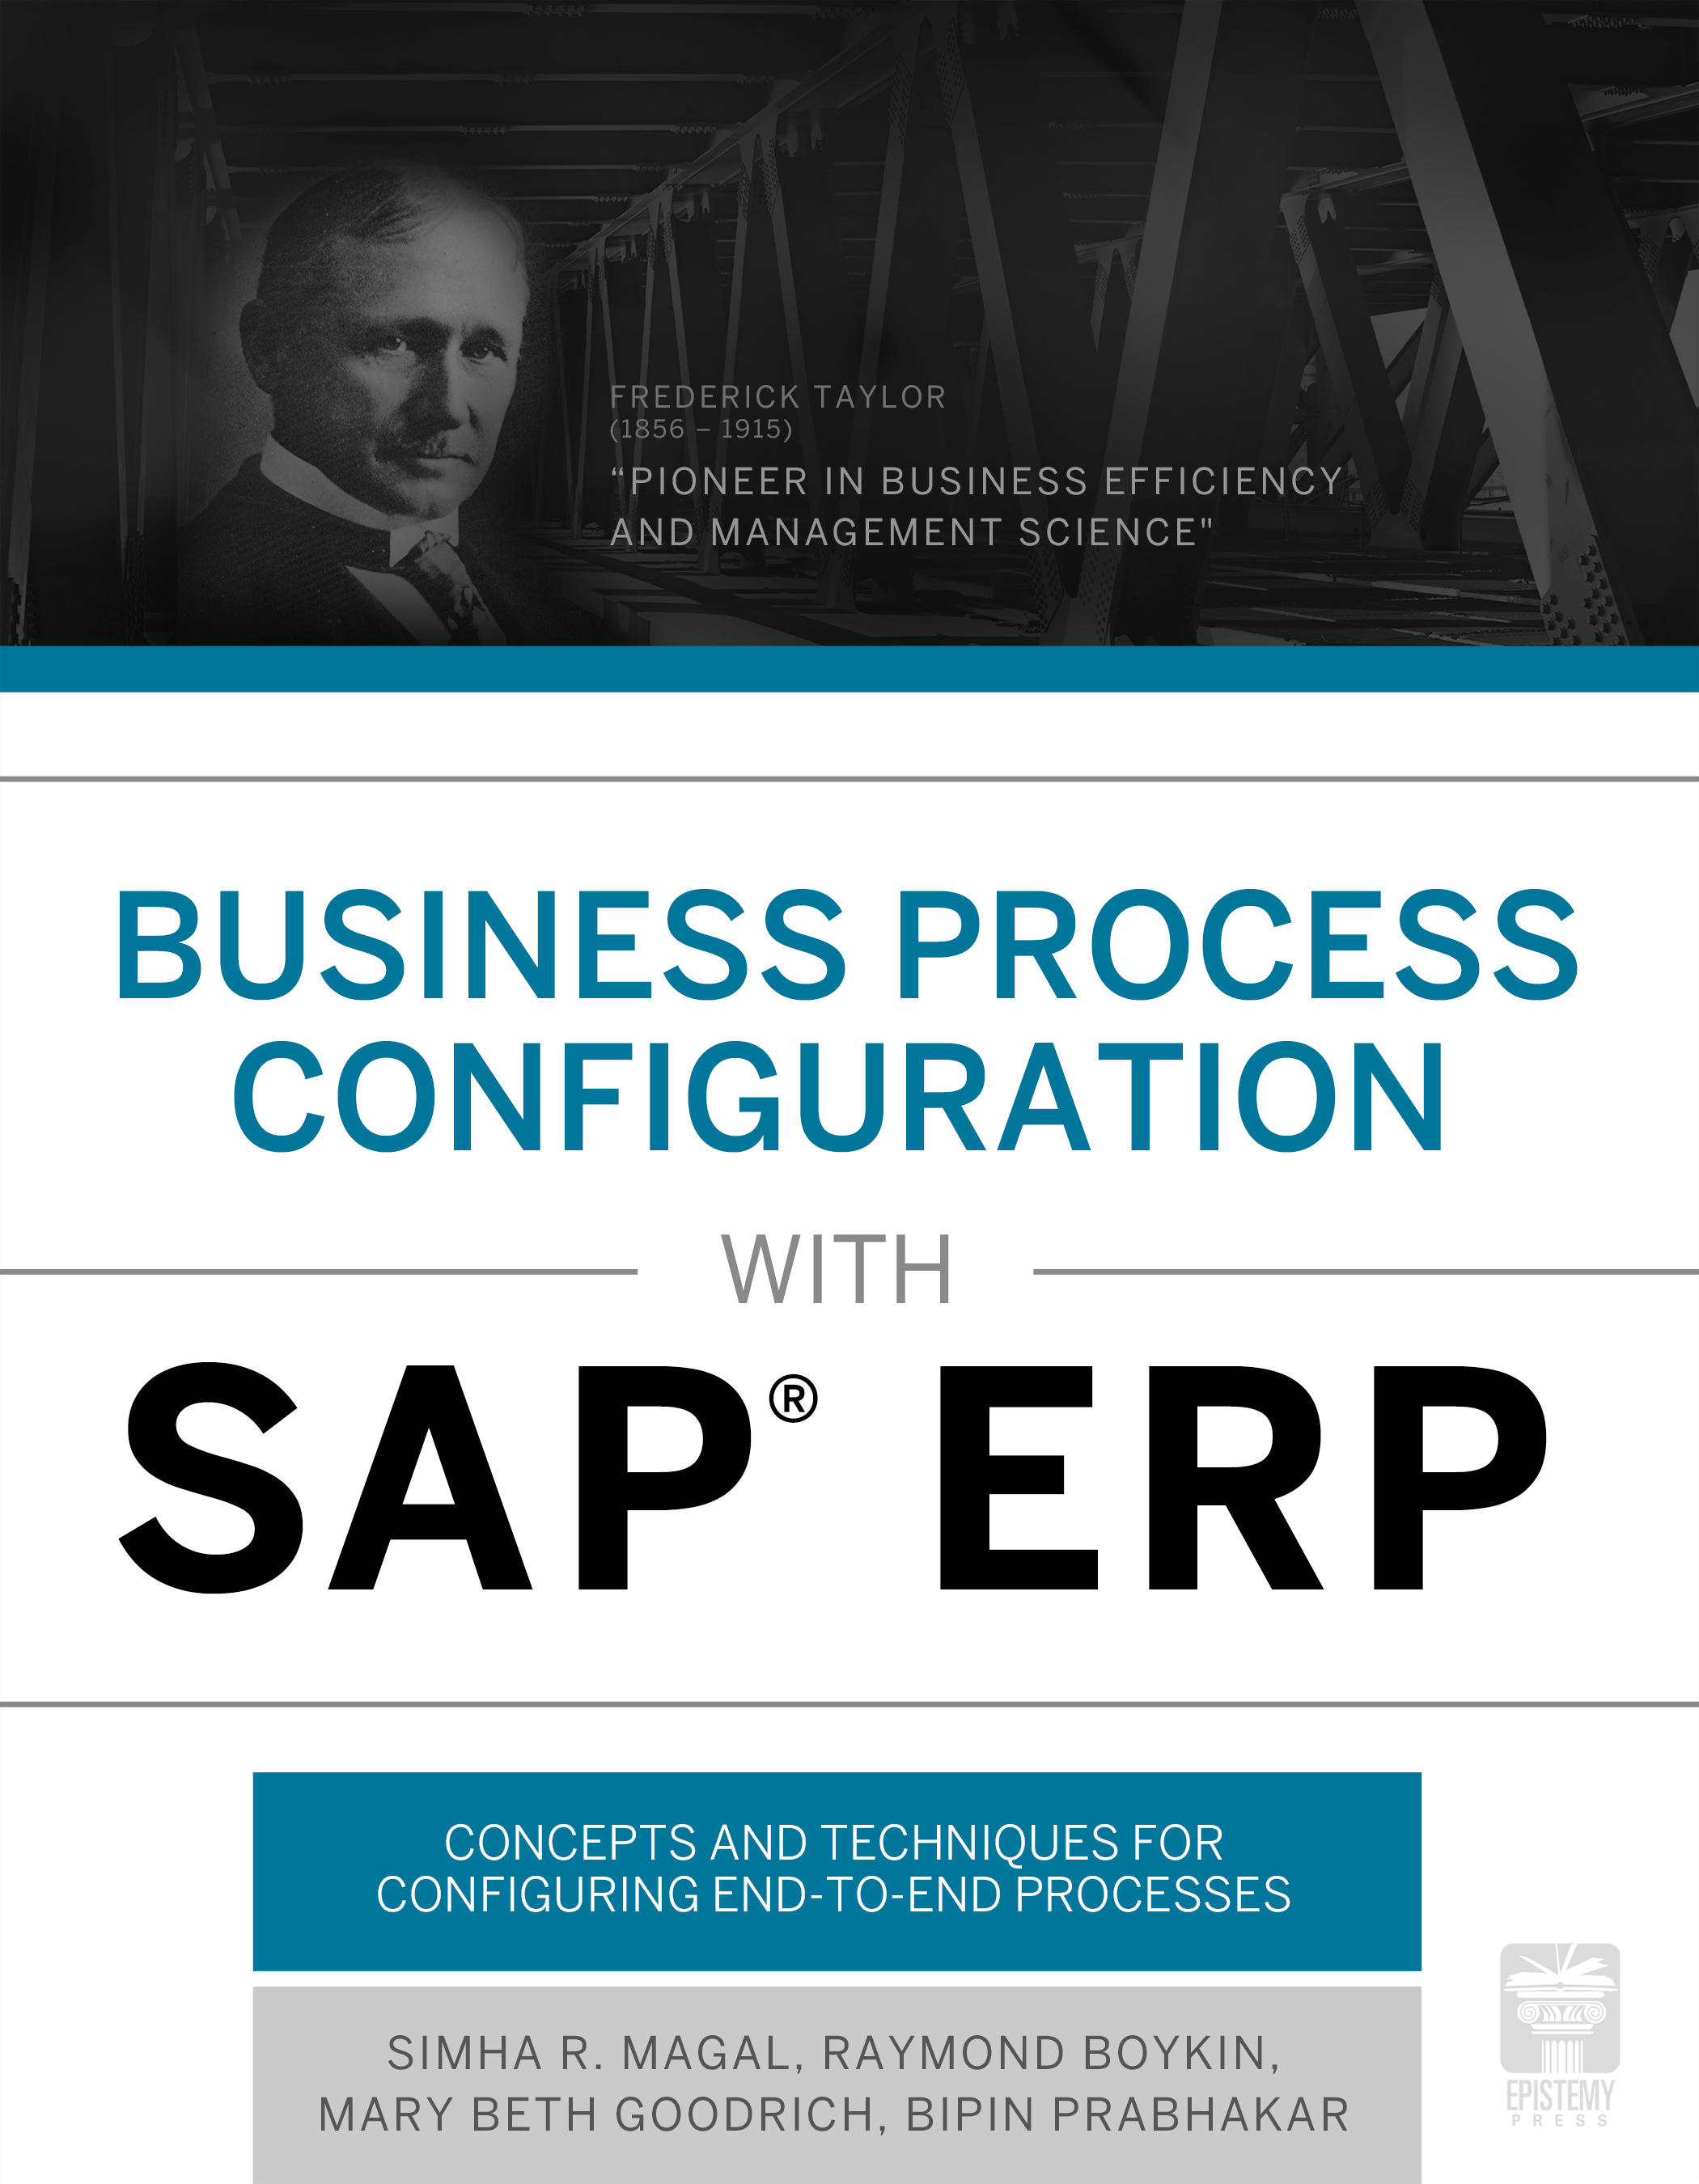 Business Process Configuration with SAP ERP – Epistemy Press, LLC